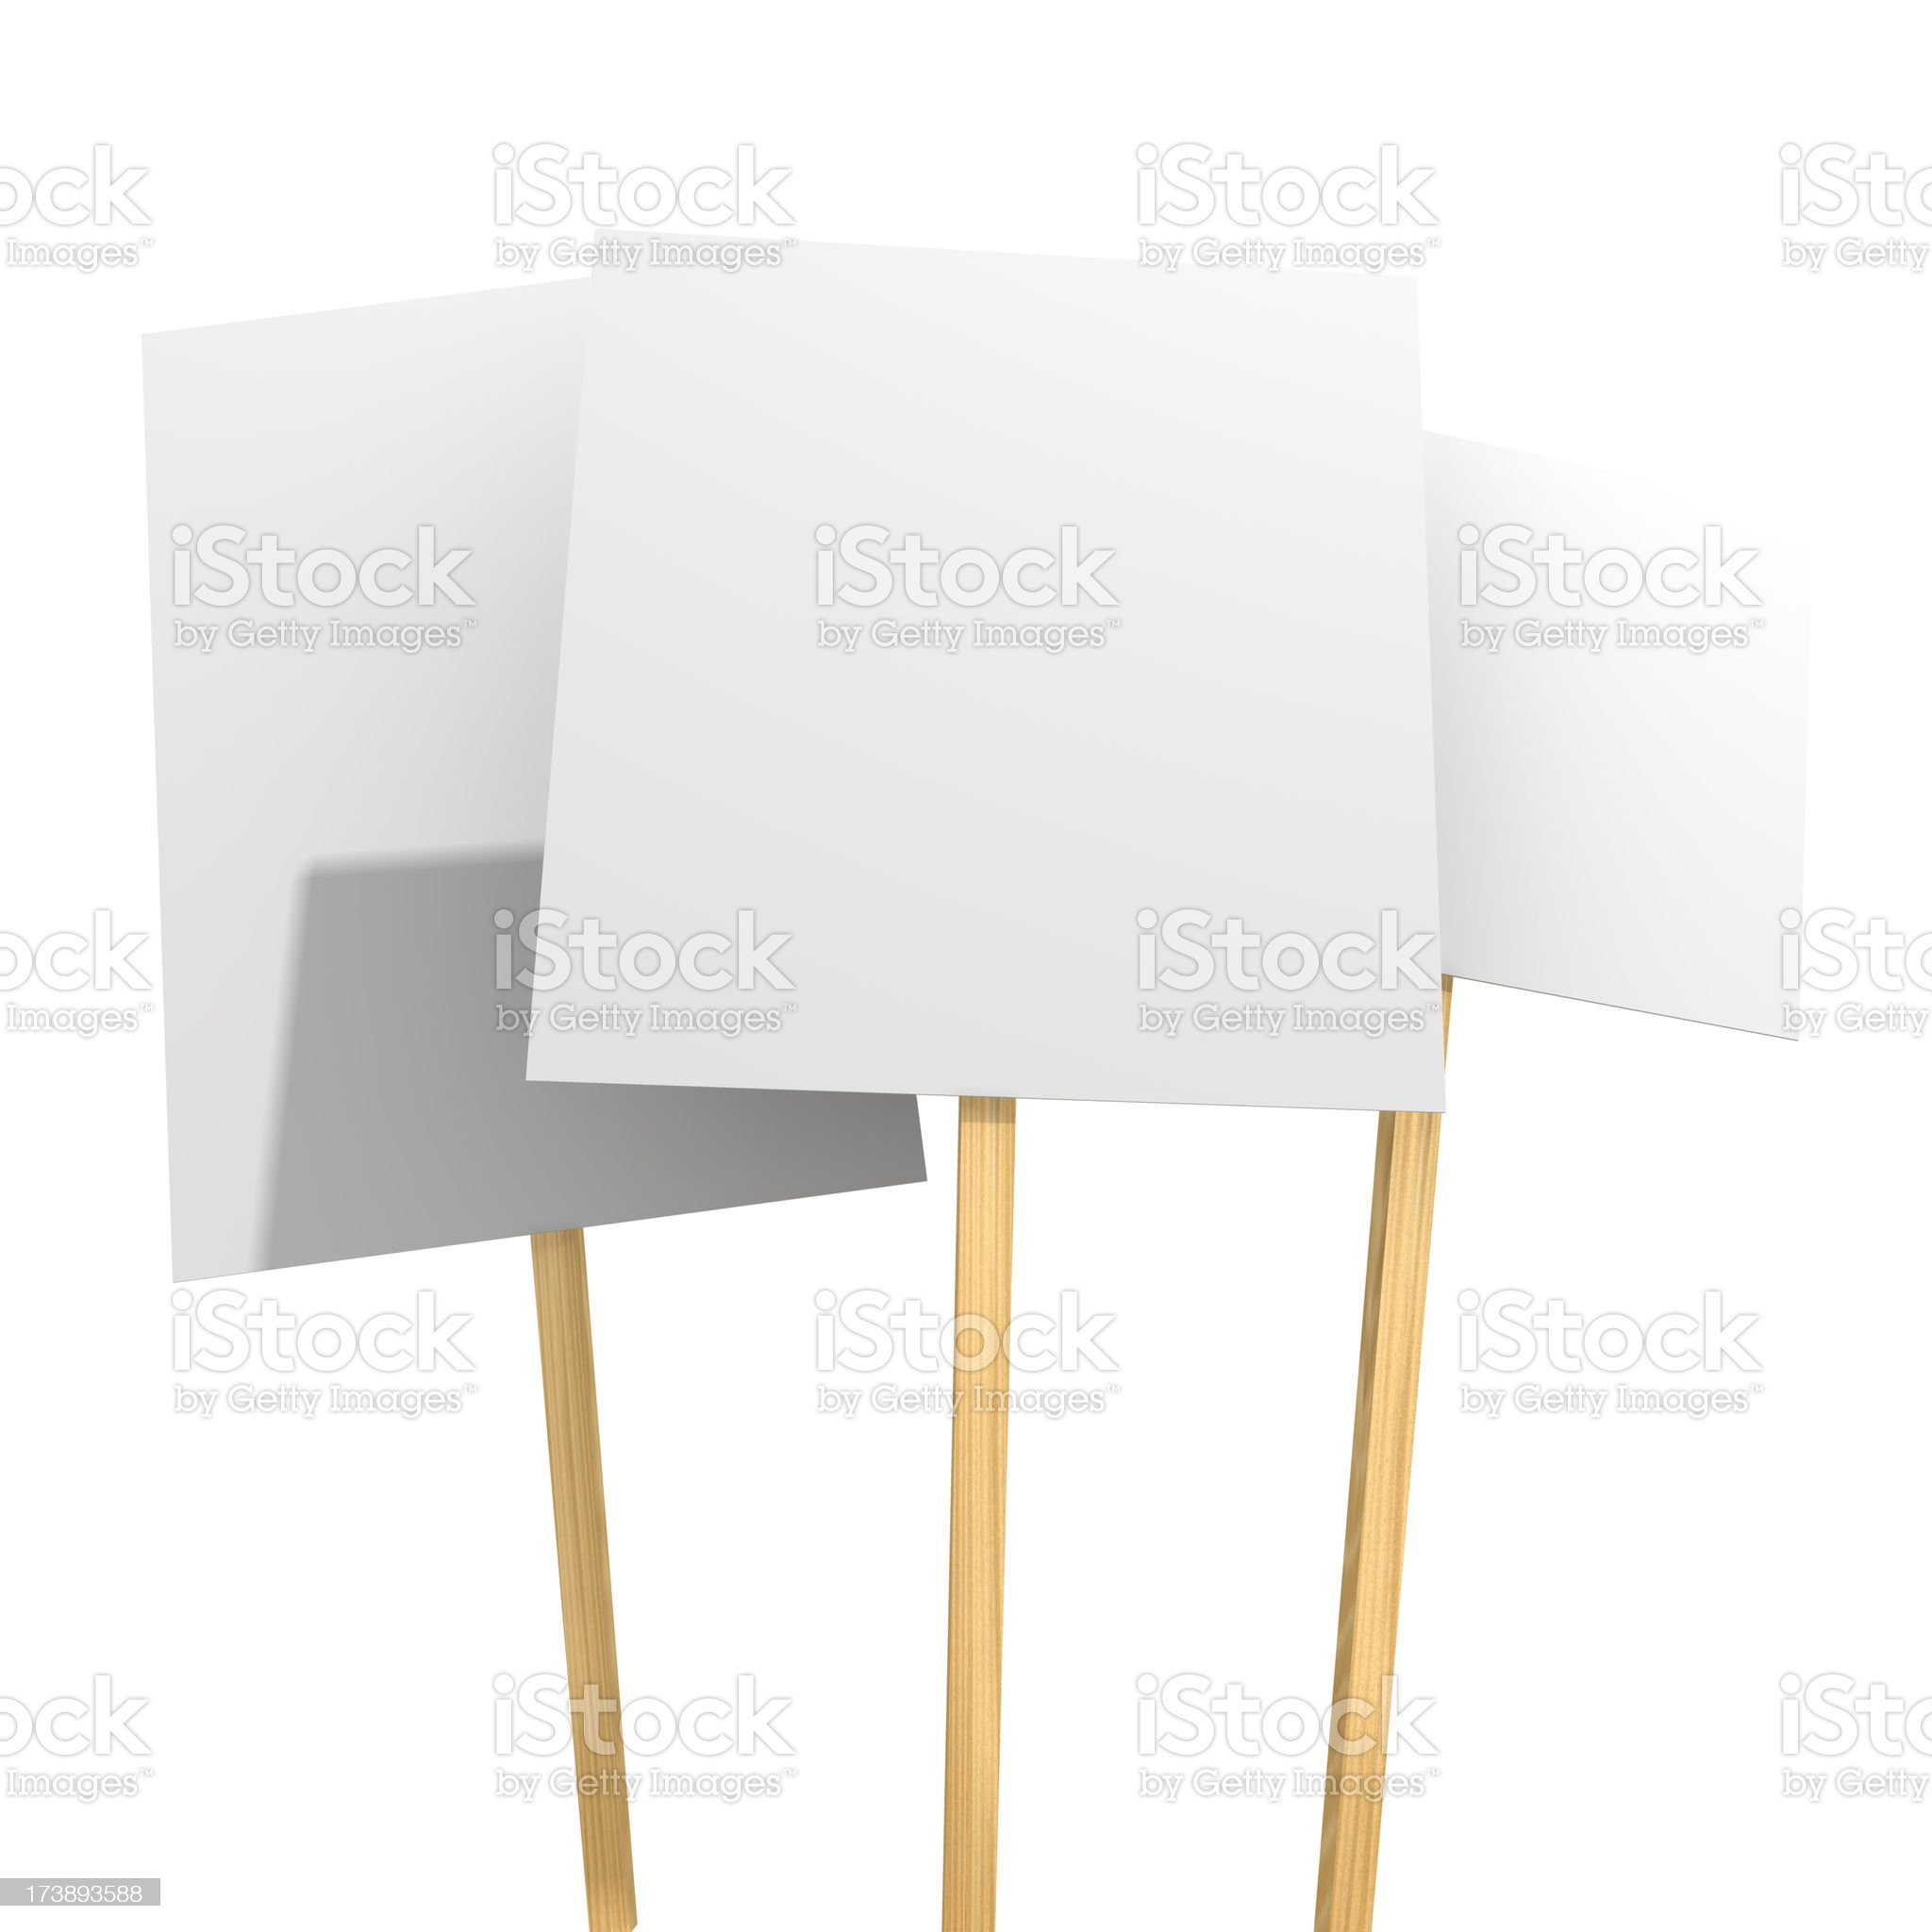 Protest Placards royalty-free stock photo